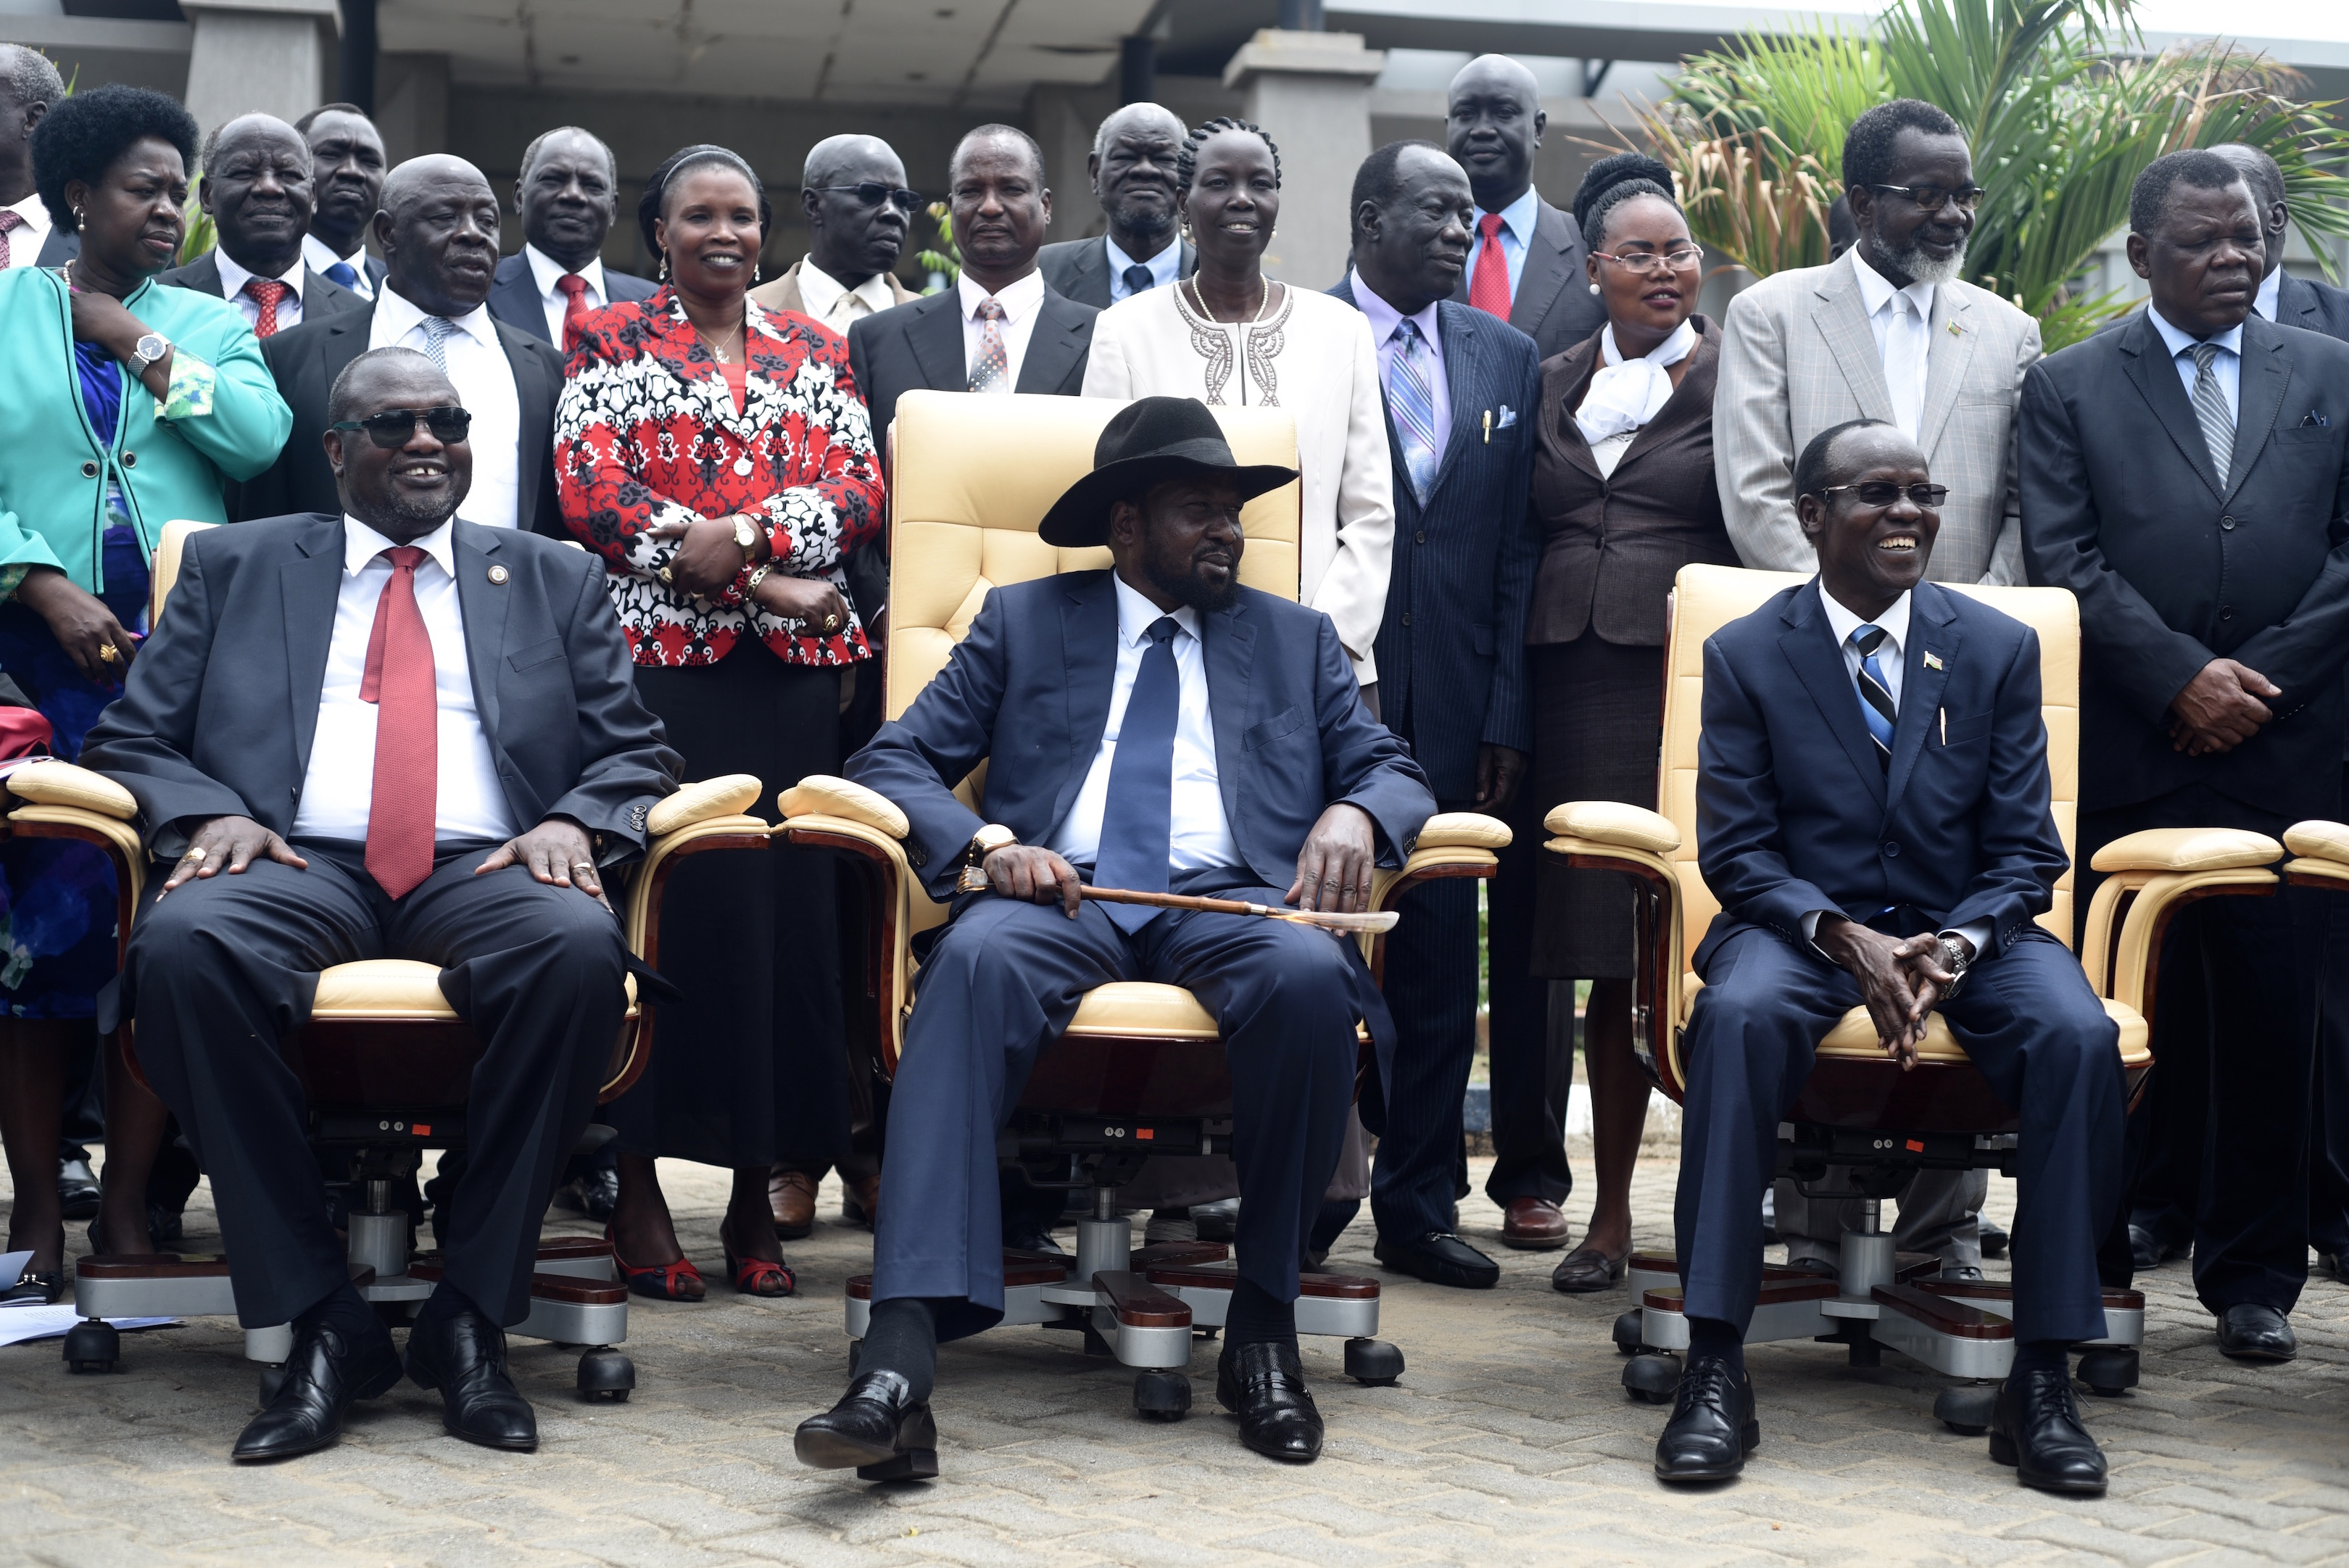 South Sudan's President Salva Kiir, center, laughs with First Vice President Riek Machar, left, and Vice President James Wani Igga, right, while cabinet members stand behind them, after the first meeting of a new transitional government of national u...